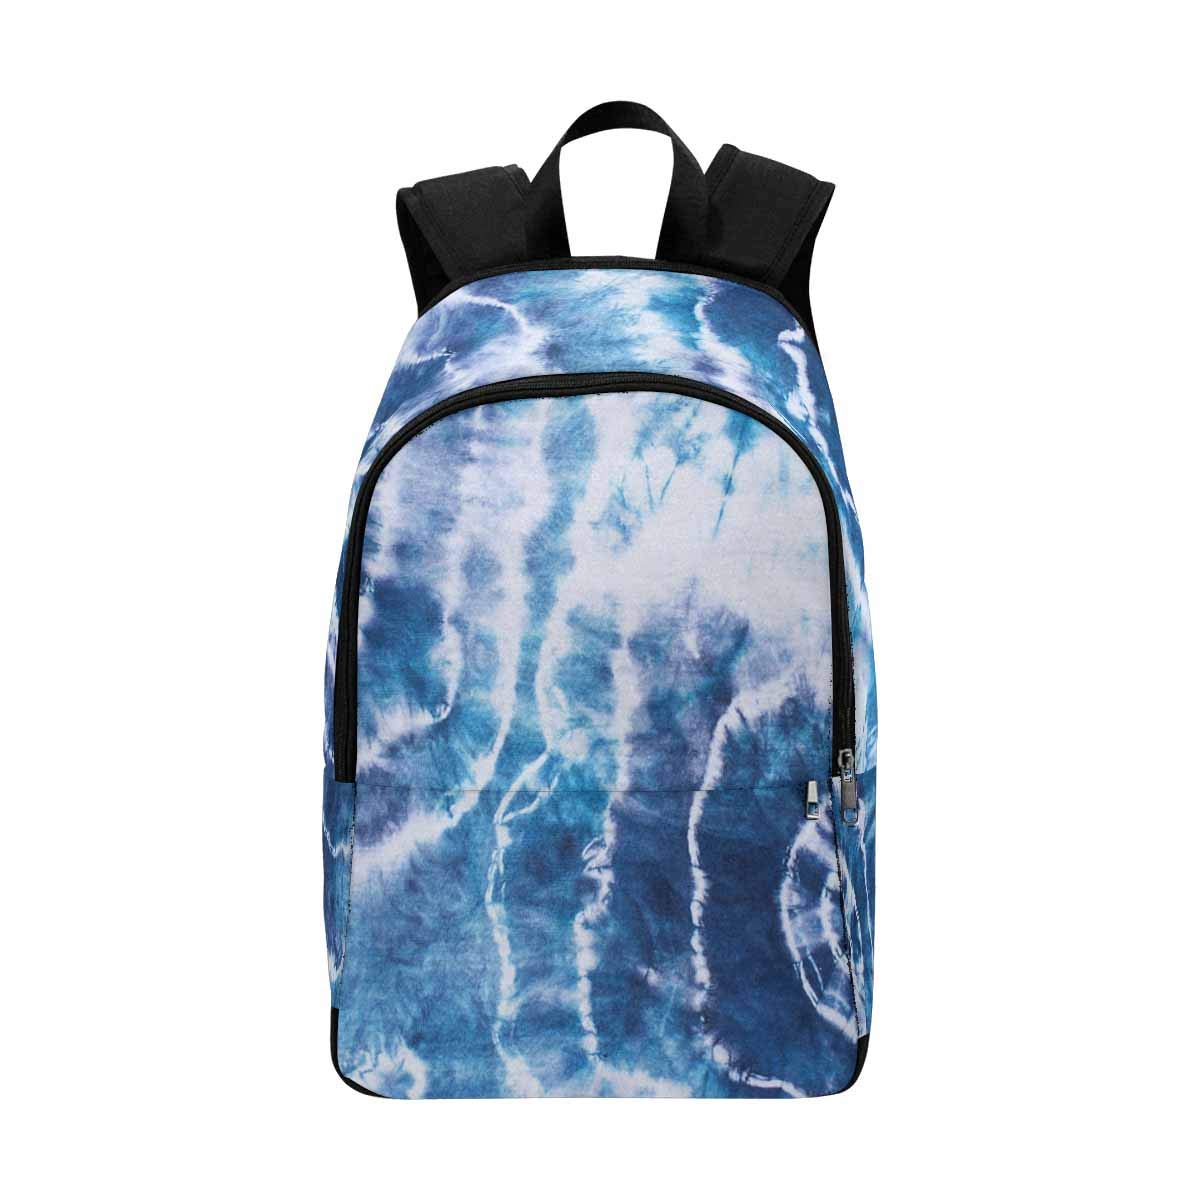 InterestPrint APPAREL ガールズ US サイズ: backpack   B07G86NLH2